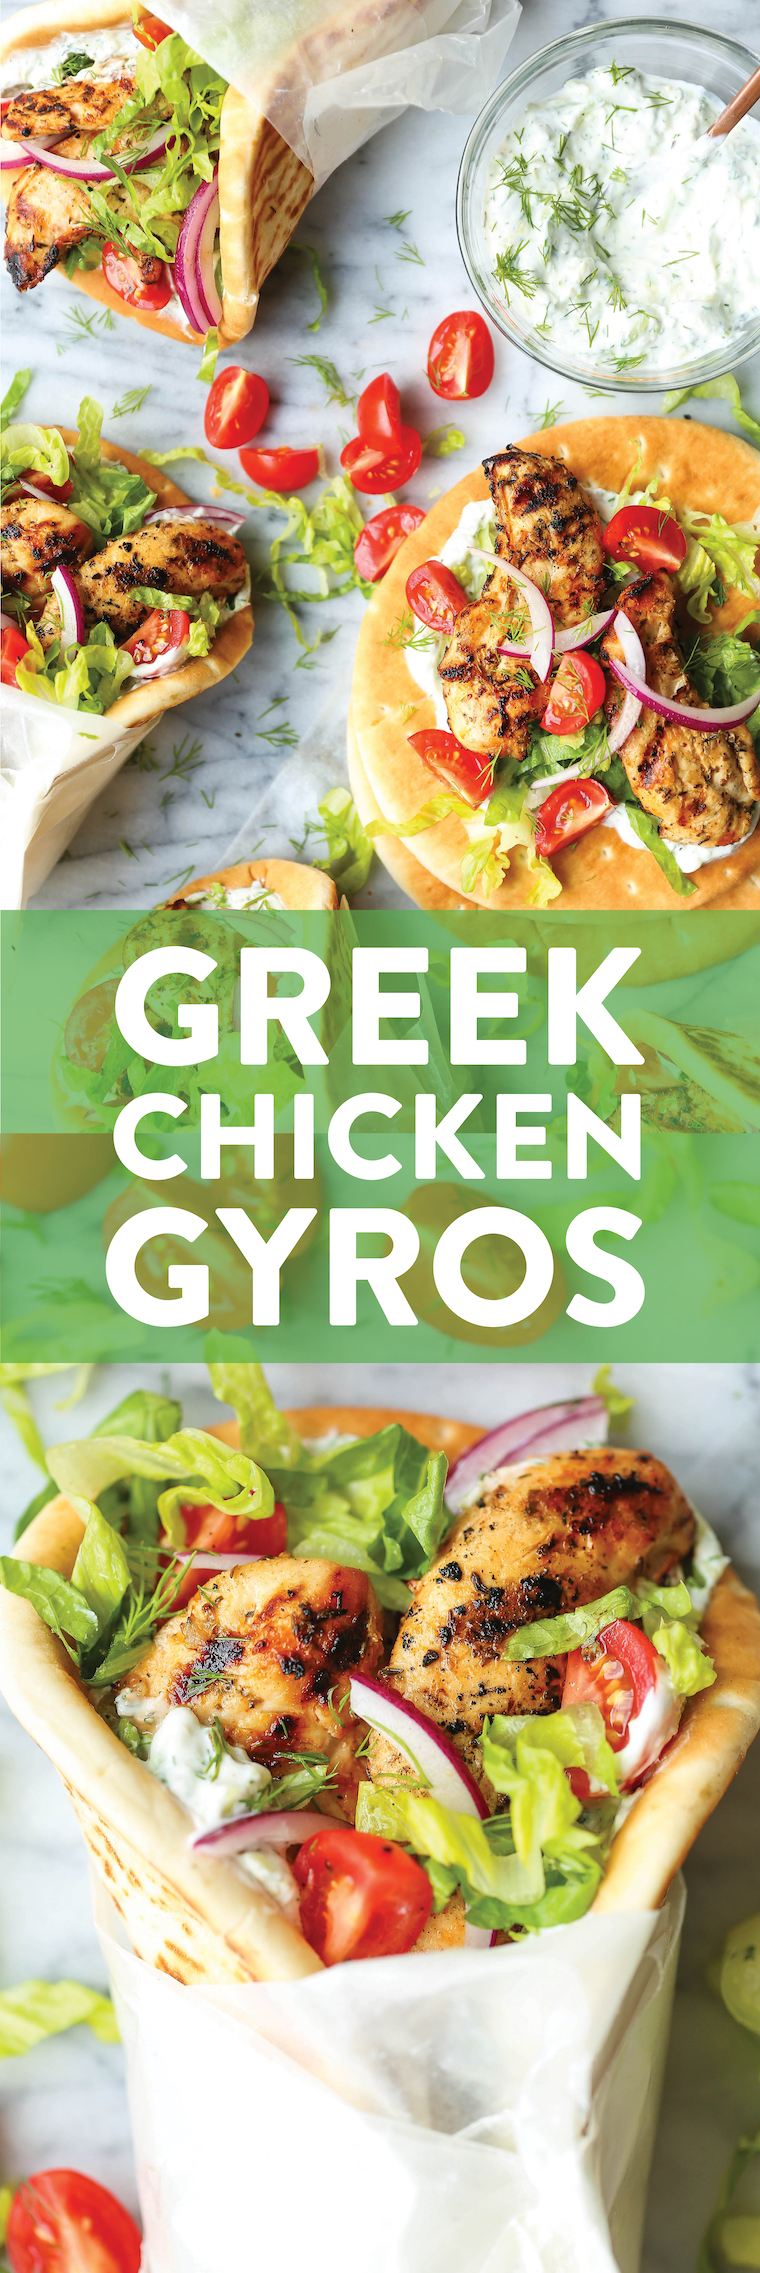 Greek Chicken Gyros - Easy, make-ahead chicken gyros! You can marinate the chicken ahead of time and whip up your homemade tzatziki too! So fast, so good!